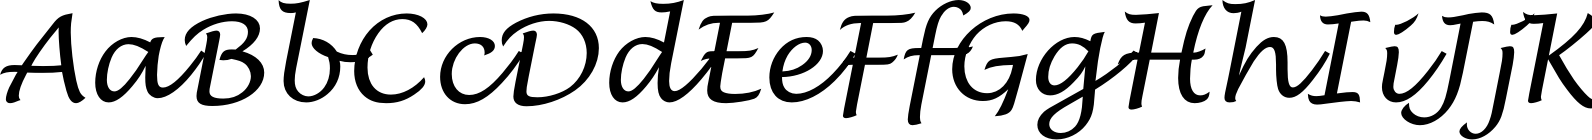 Lucida Handwriting Regular Italic